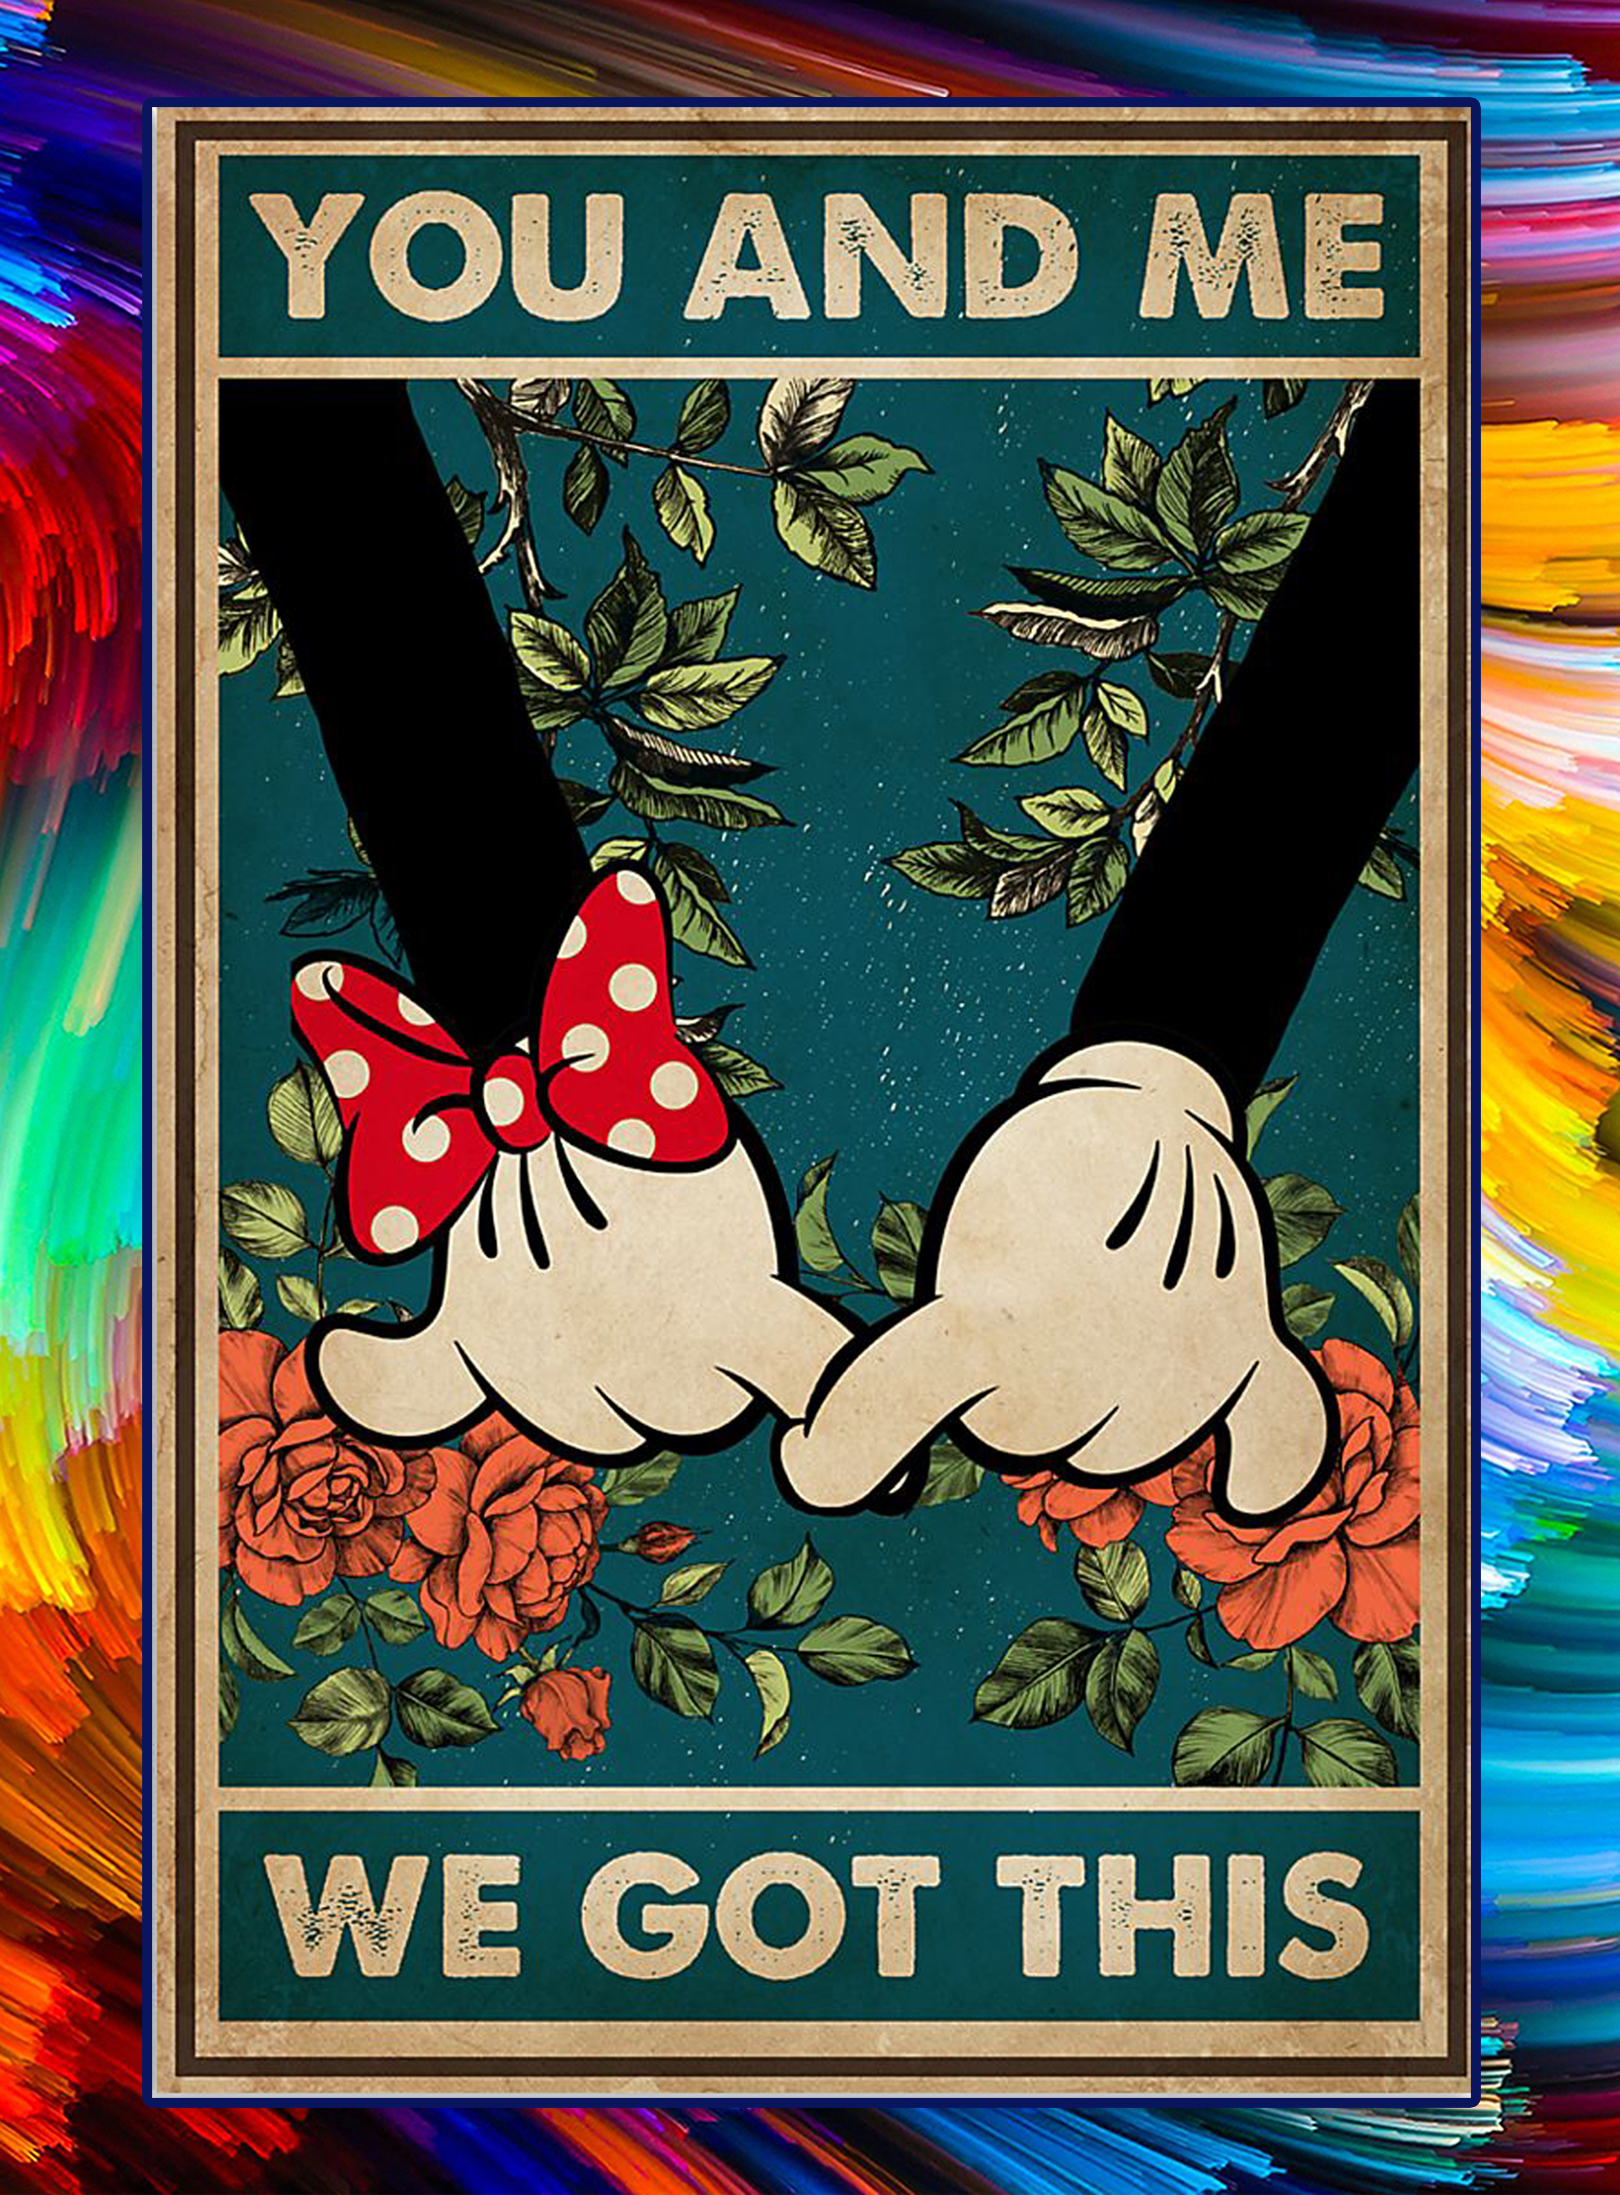 You and me we got this mickey poster - A3